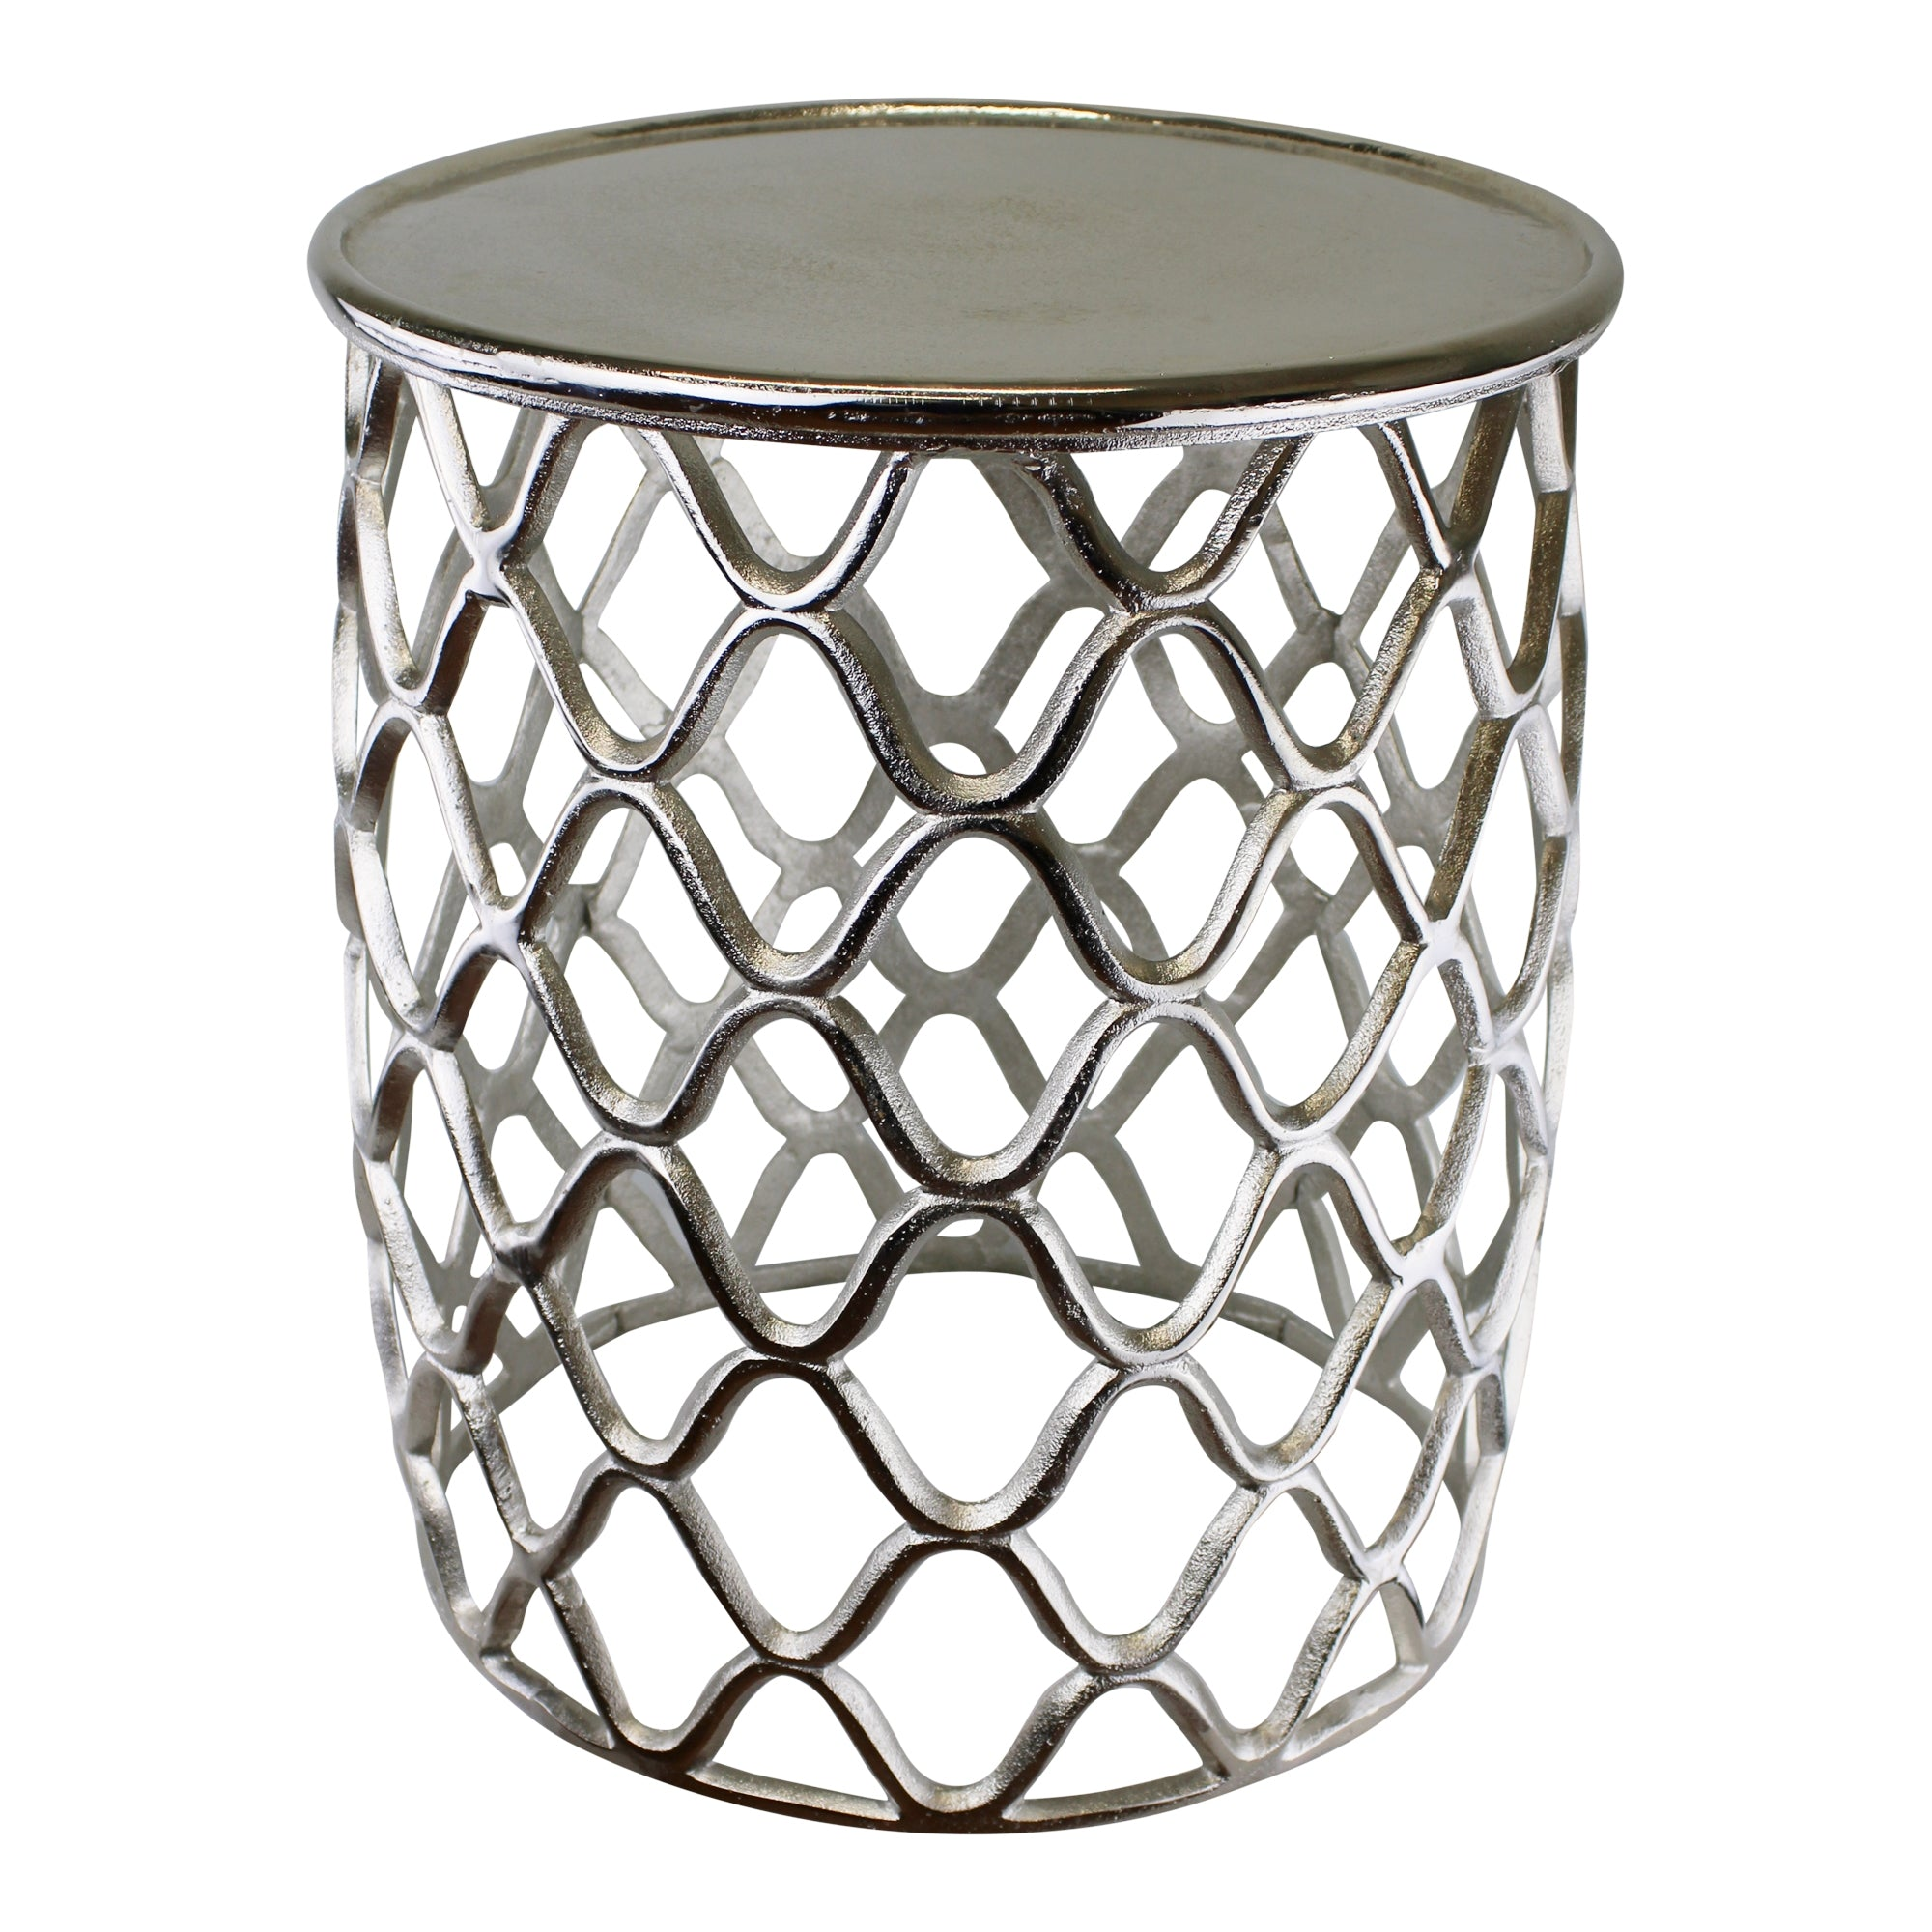 Decorative Silver Metal Side Table, Furniture by Low Cost Gifts